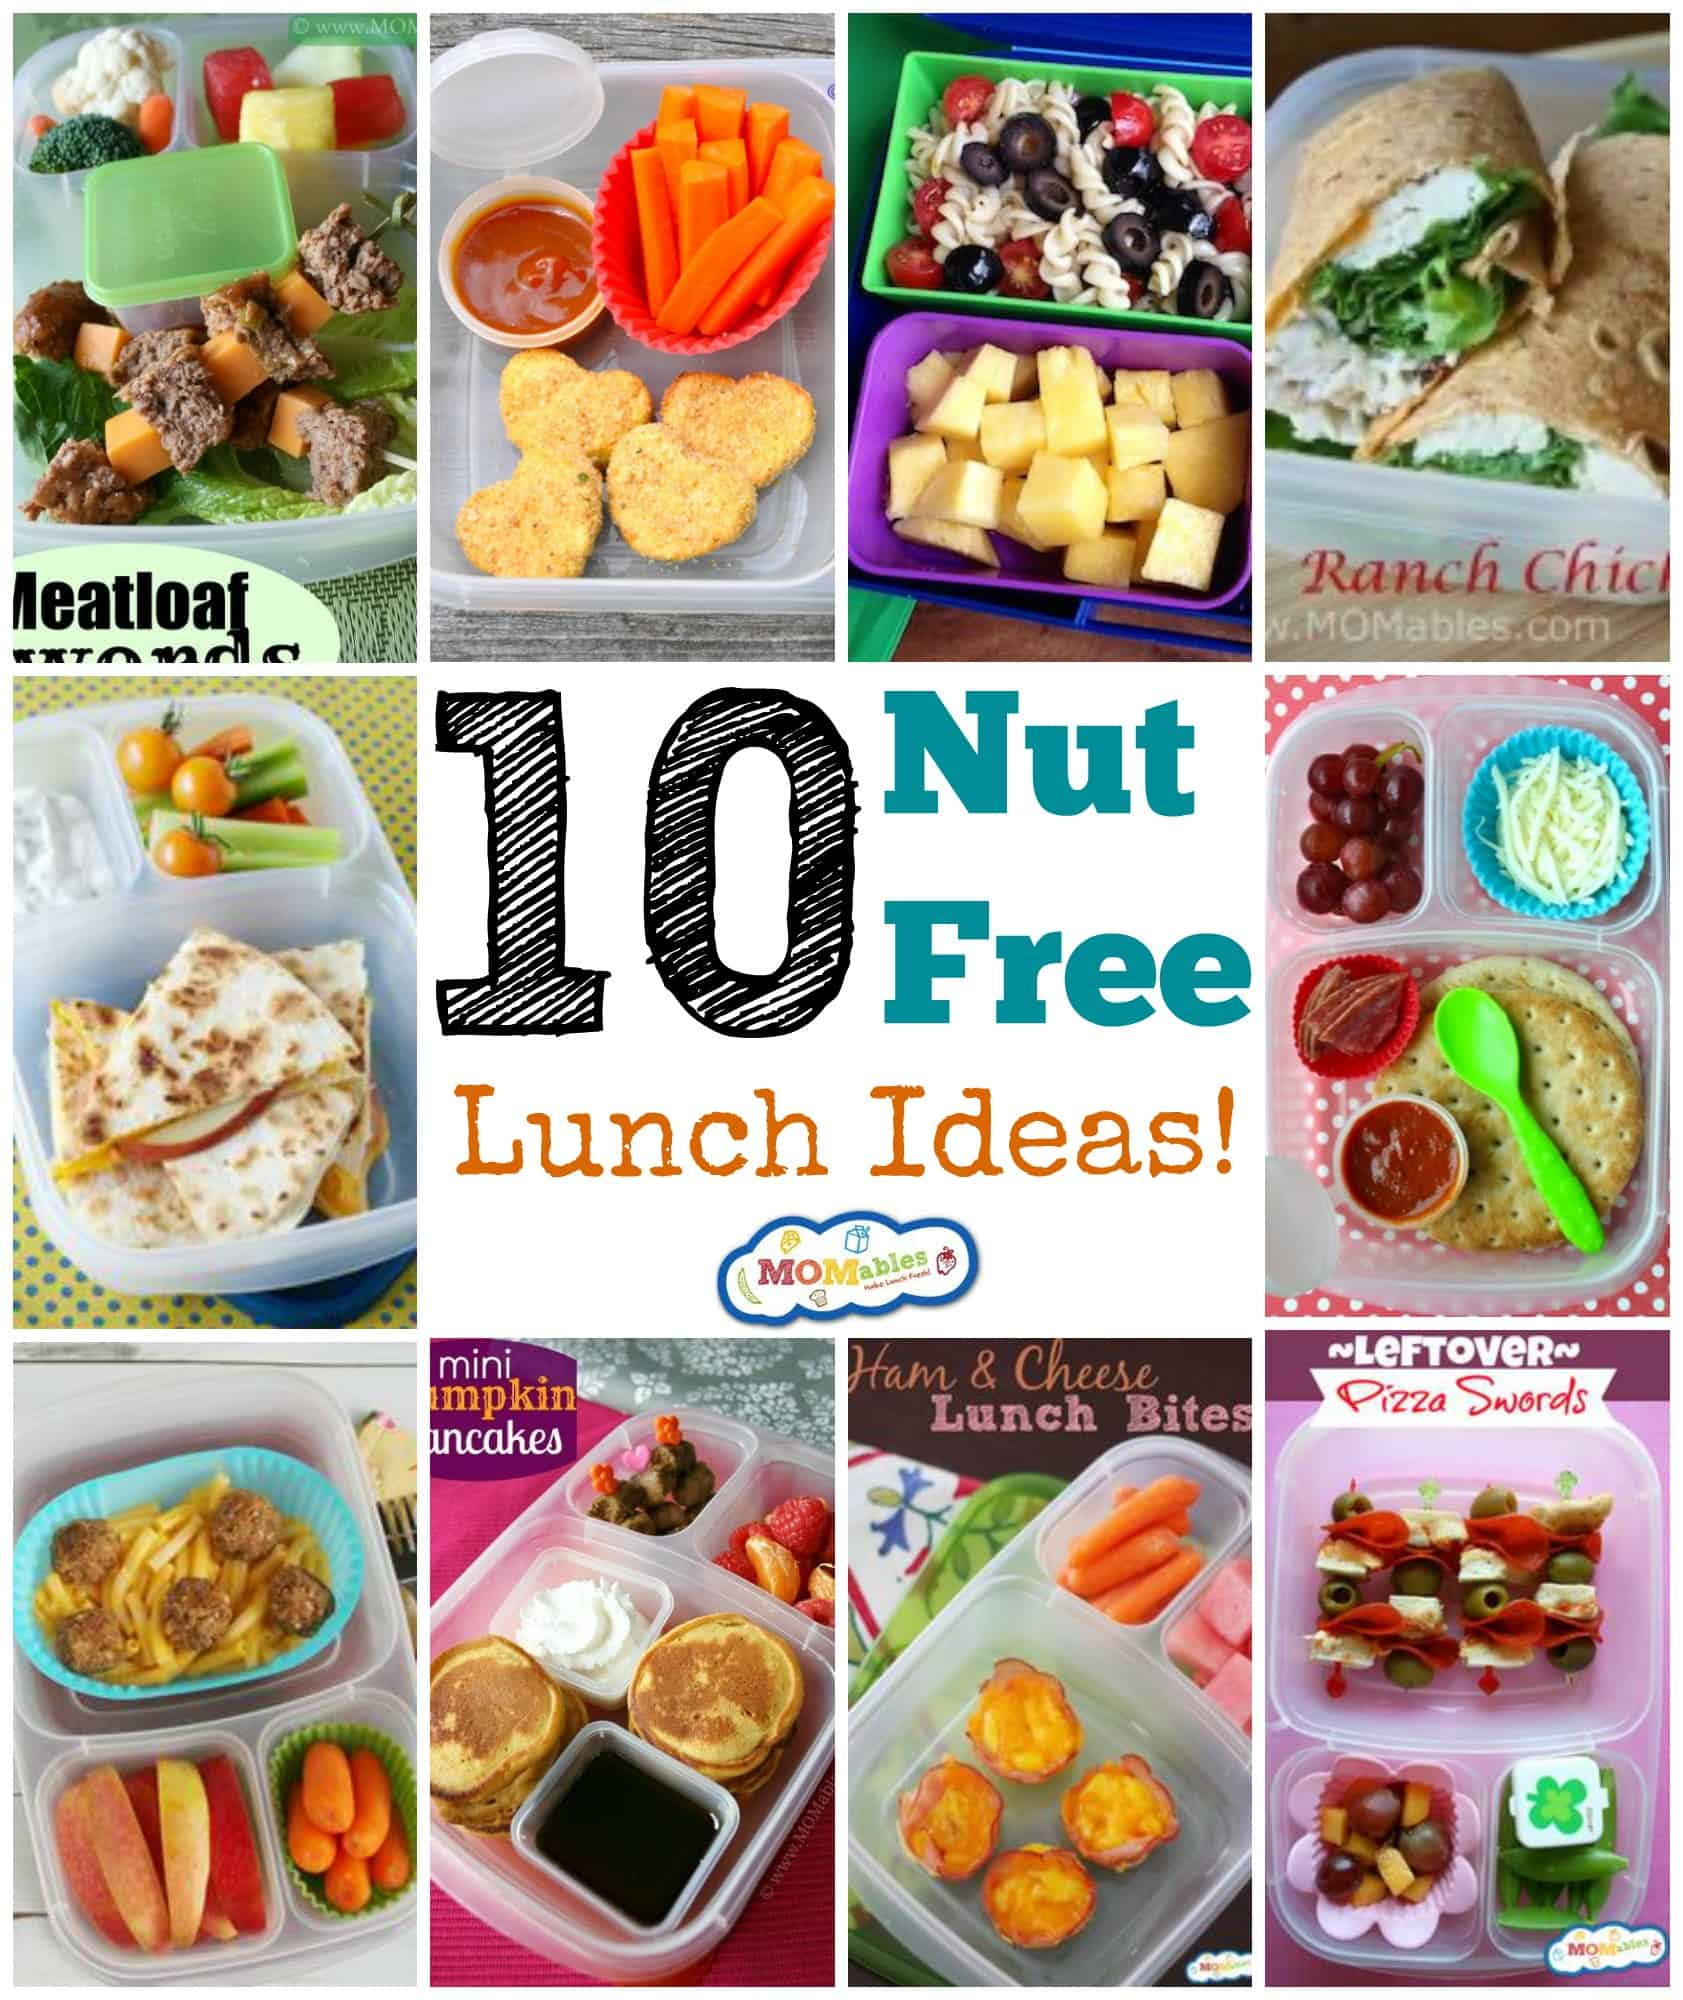 10 nut free lunch ideas